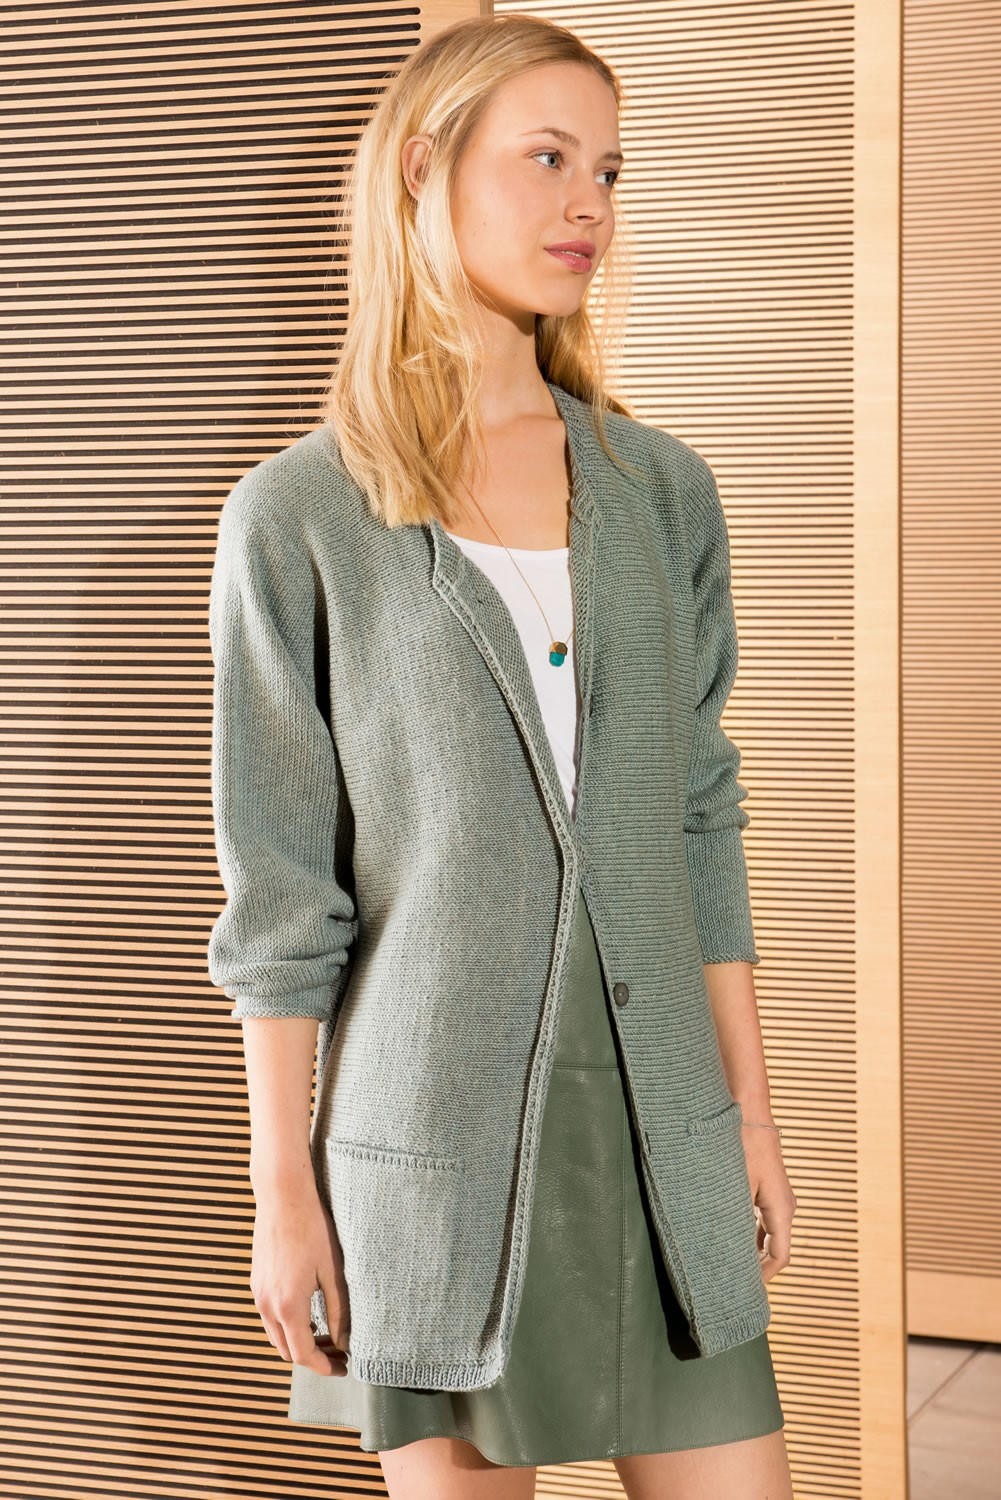 Lana Grossa JACKET in Cool Wool Melange